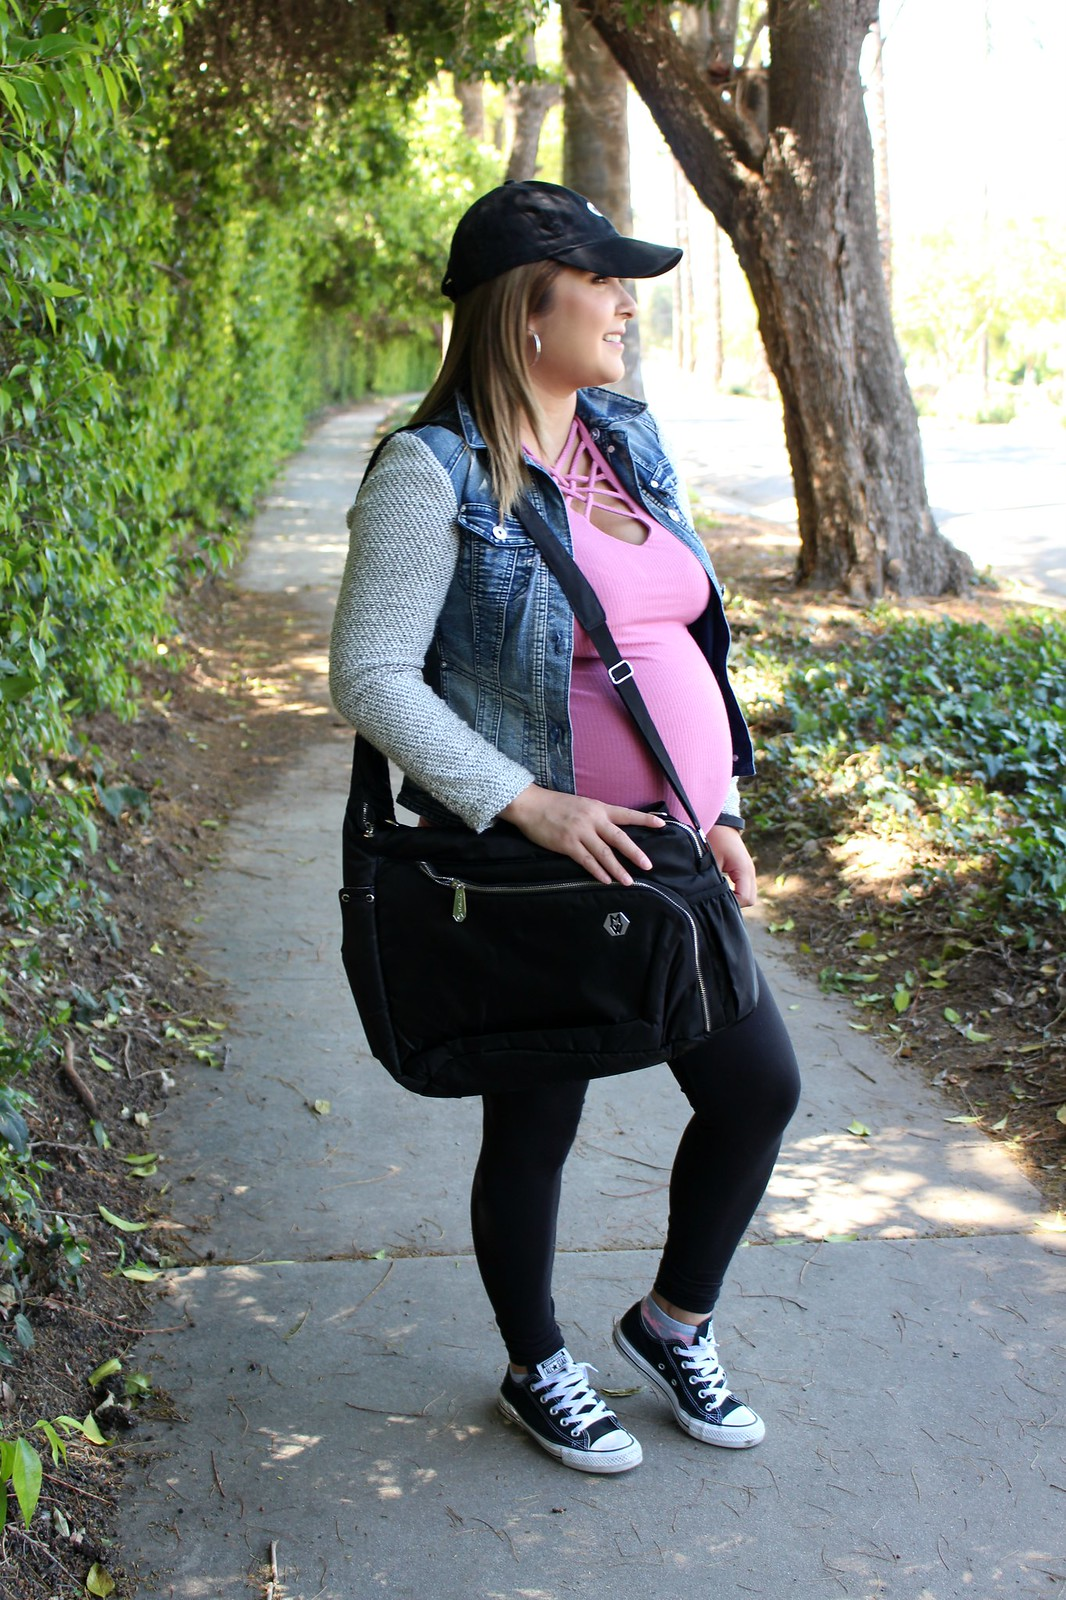 How to Choose a Diaper Bag That's Right for You